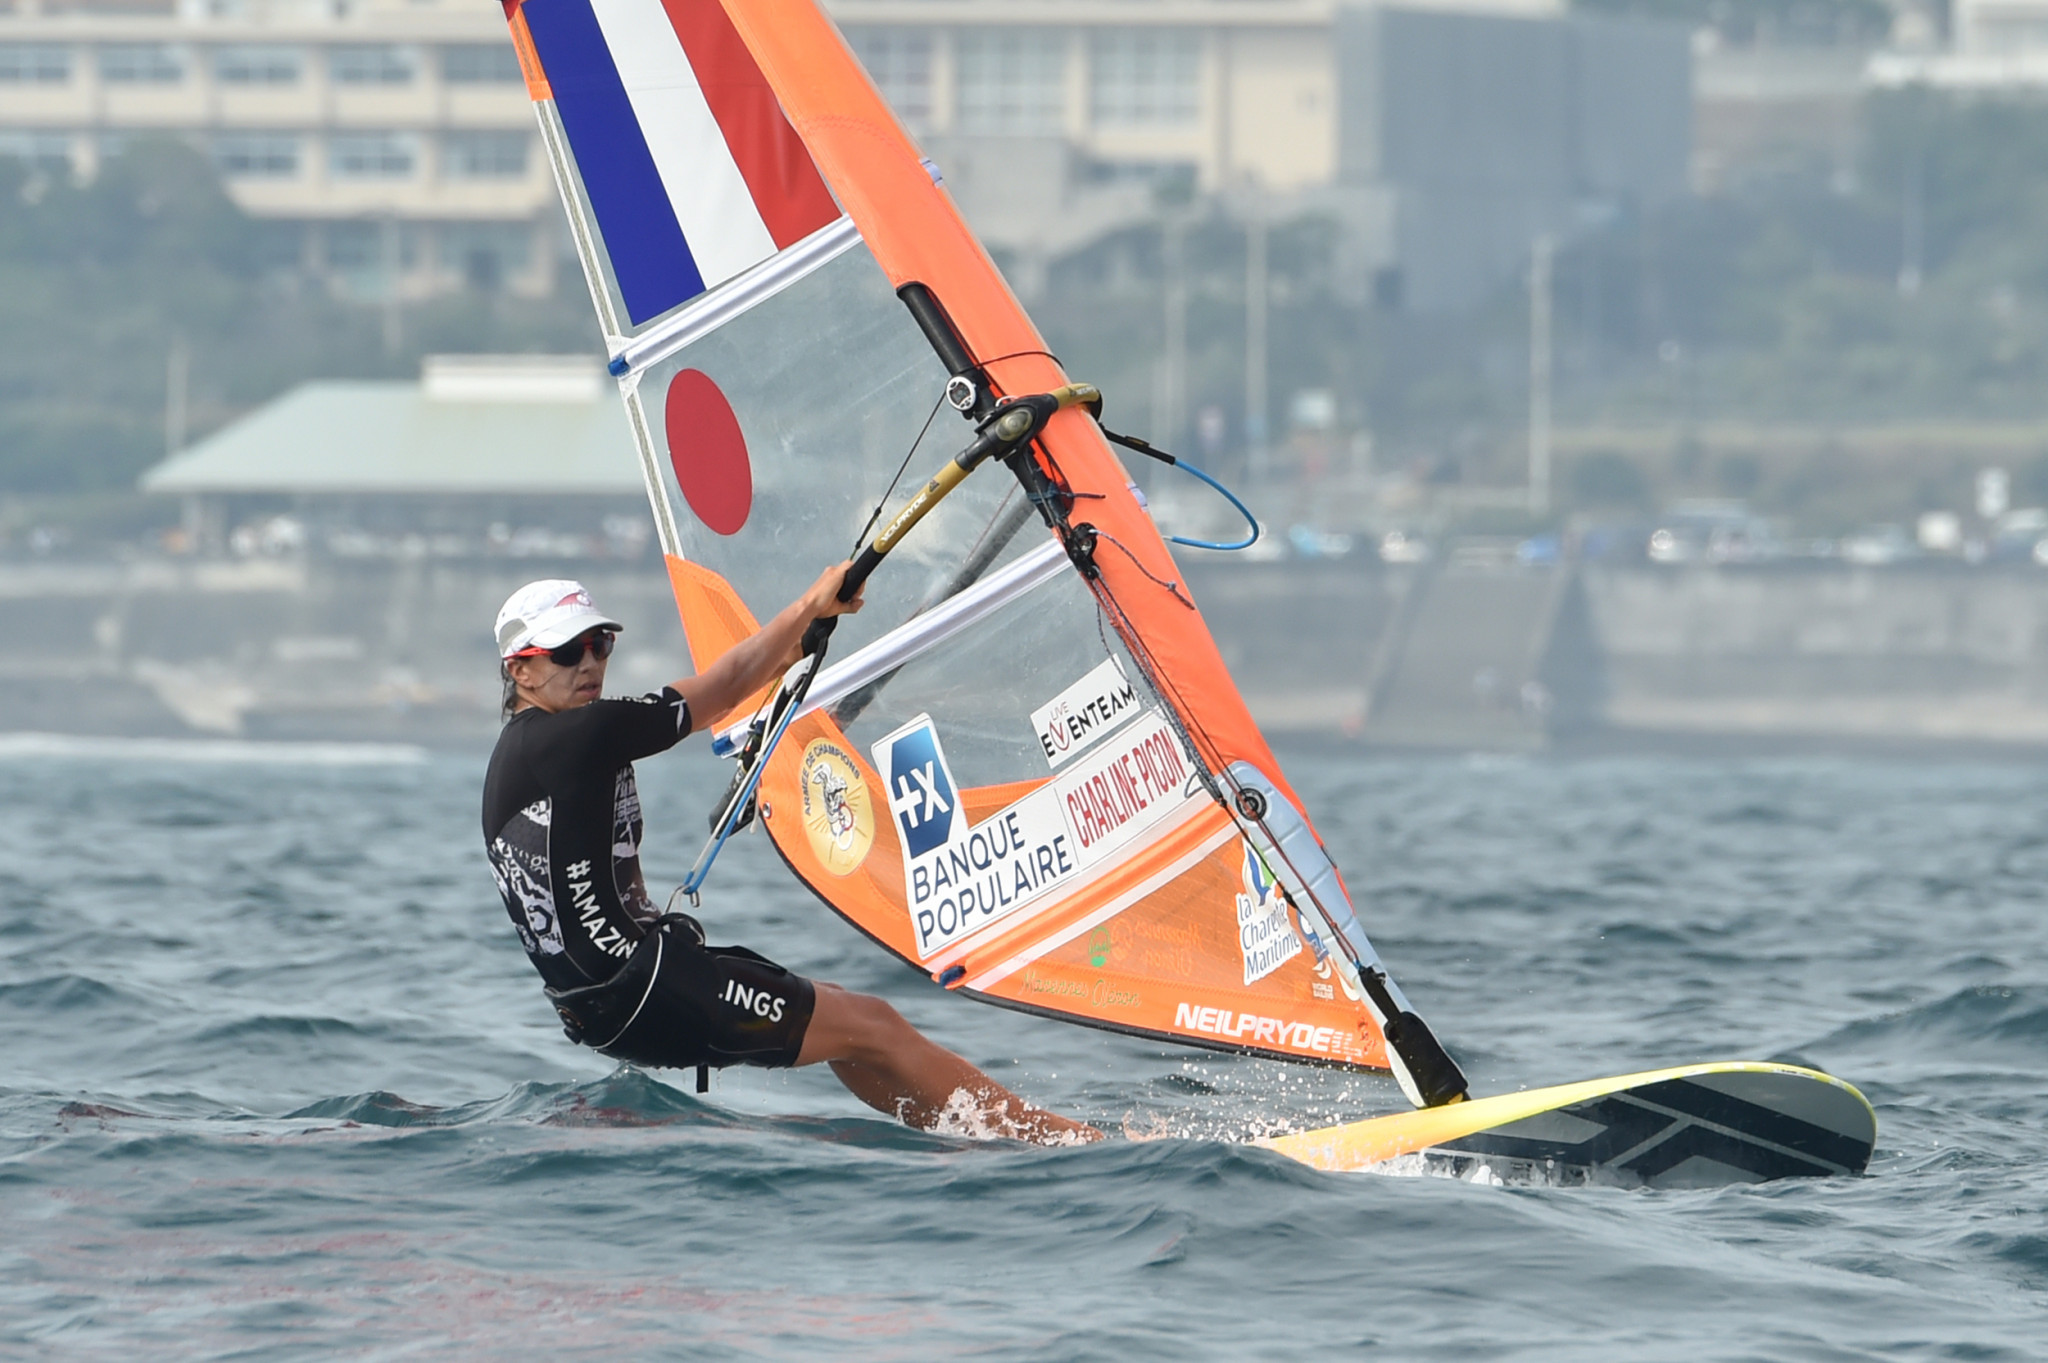 Picon and Cohen strengthen leads at RS:X European Championships in Vilamoura